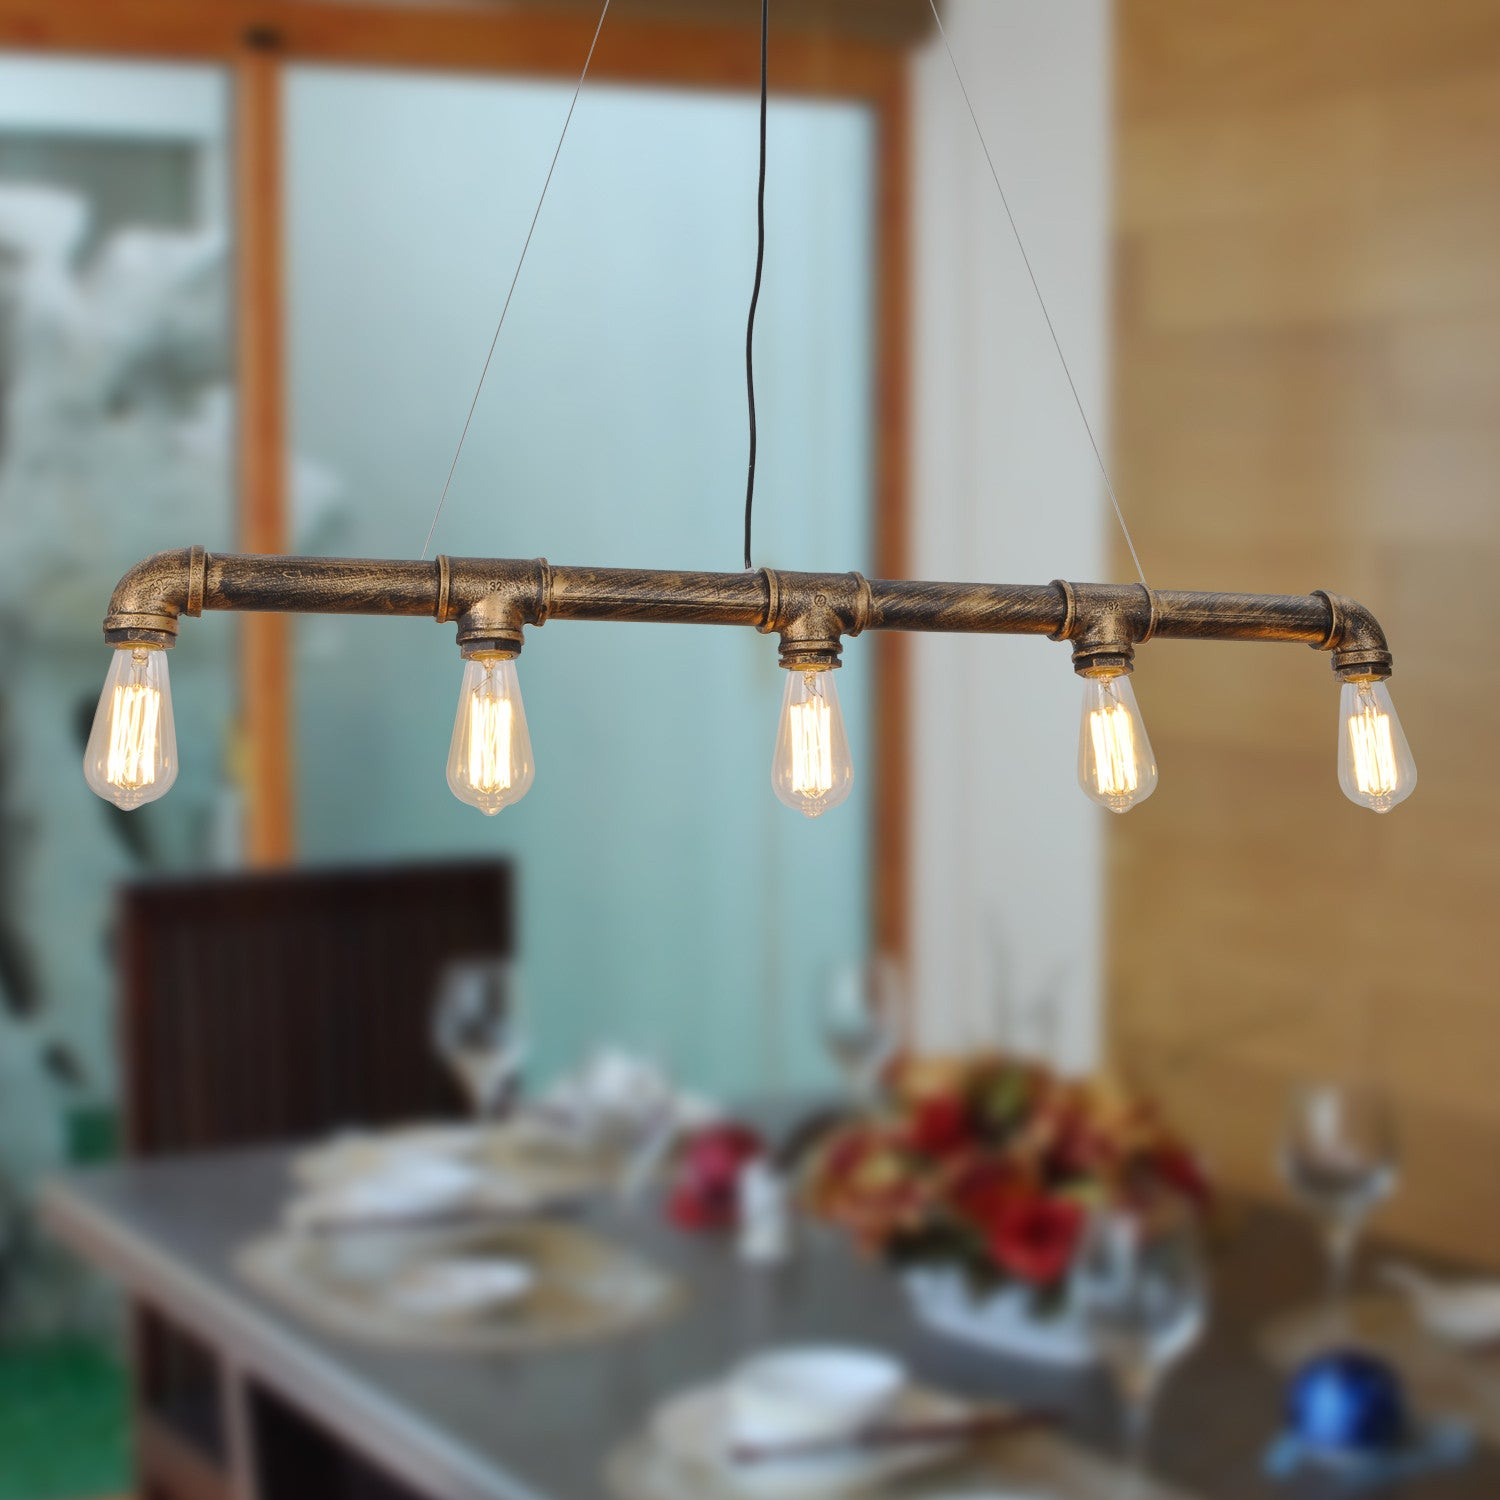 Vintage Metal Water Pipe Pendant Light With 5...